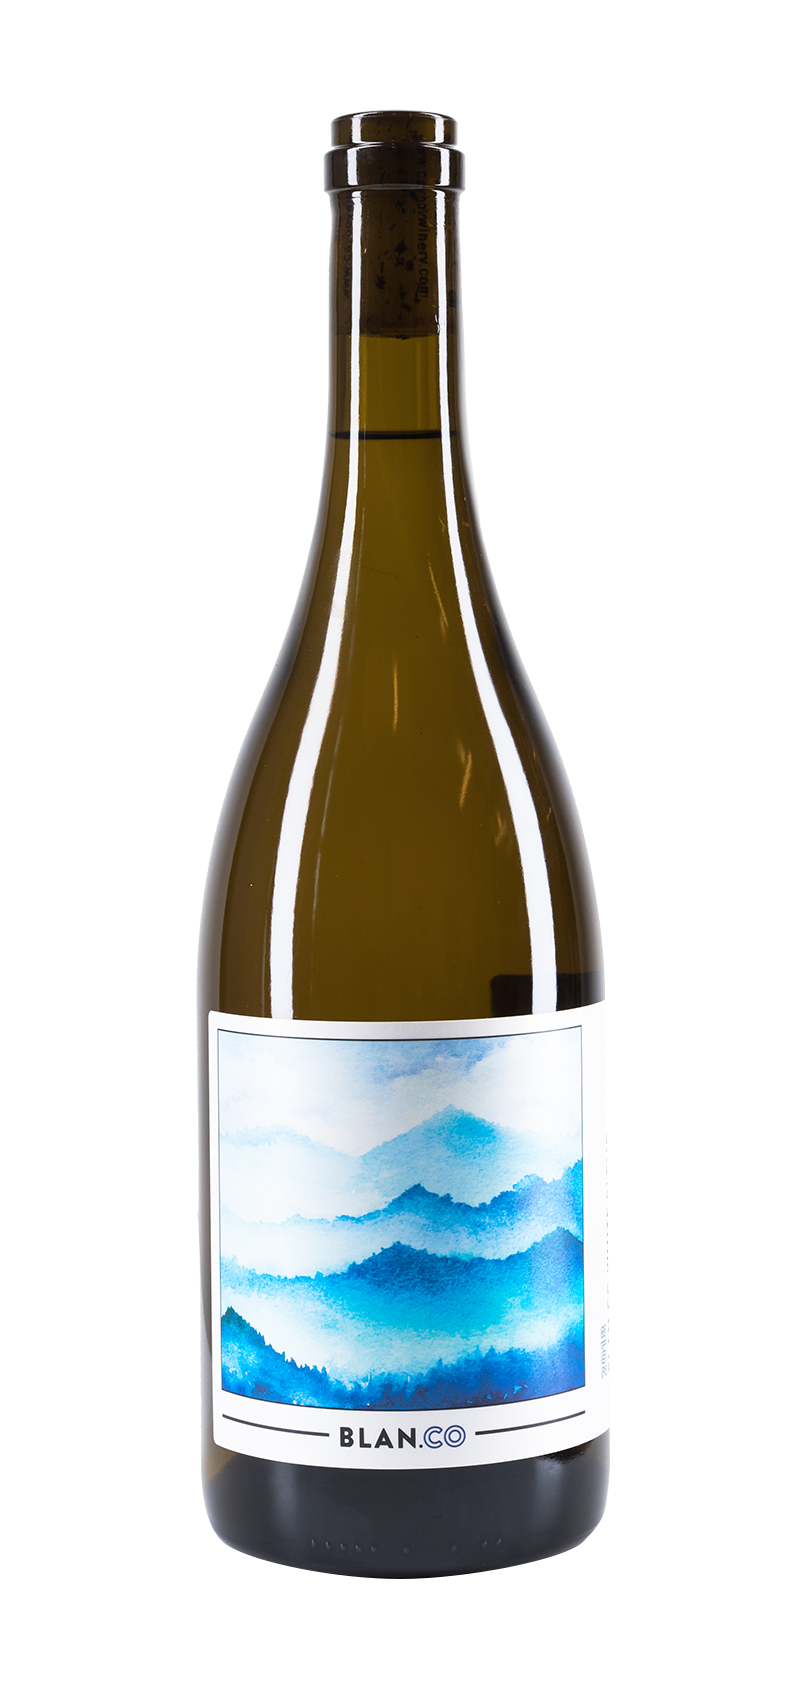 Bottle of Carboy Winery's Blan.co White Blend wine.